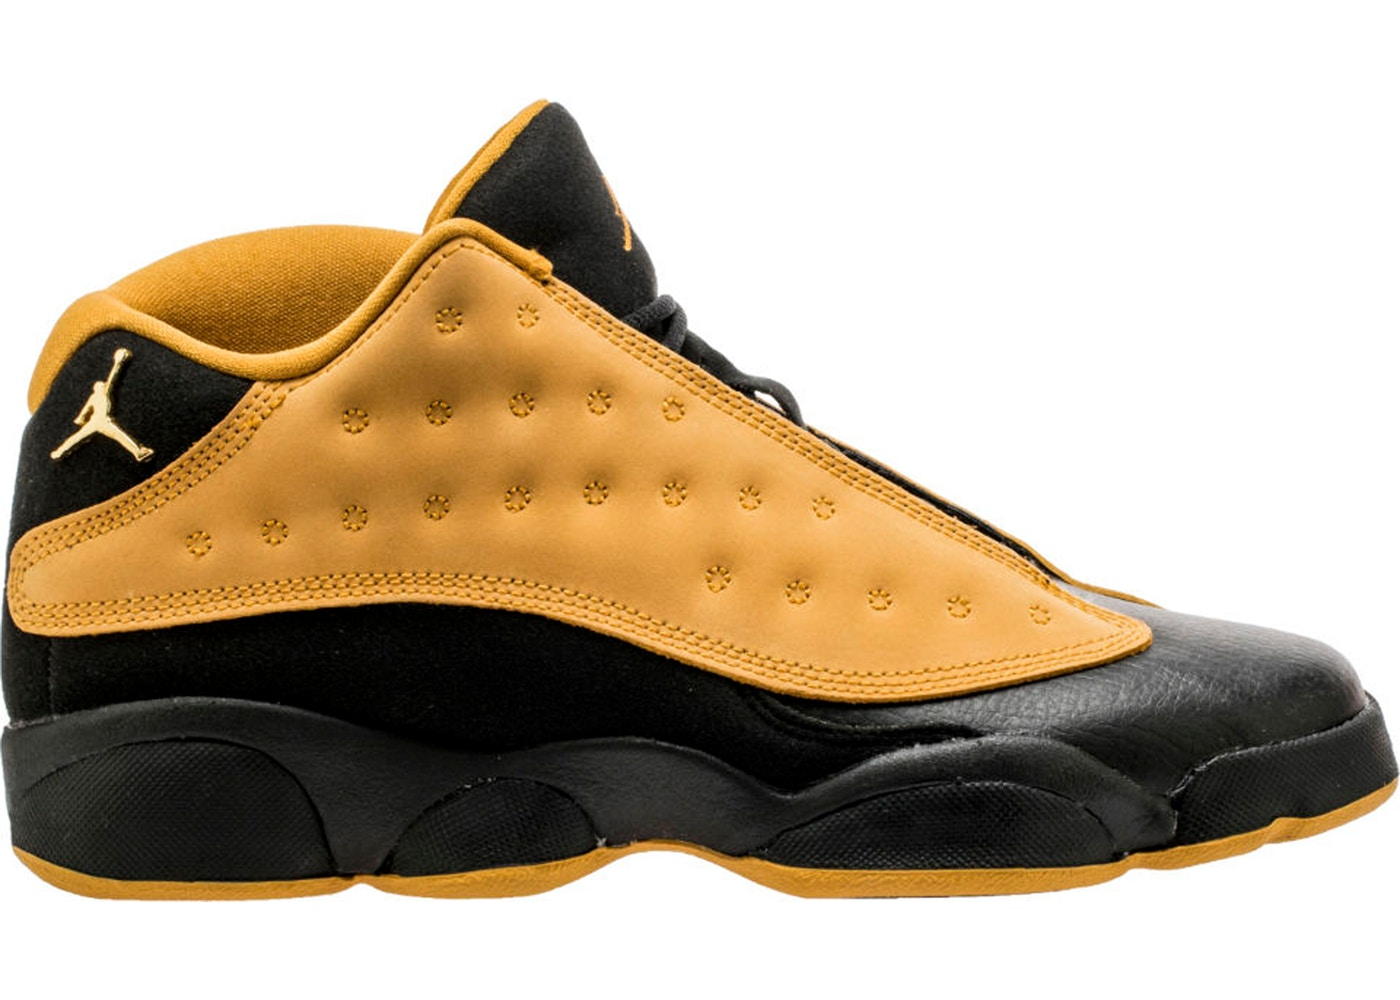 1e89ade00e4 Sell. or Ask. Size: 7Y. View All Bids. Jordan 13 Retro Low Chutney (GS)